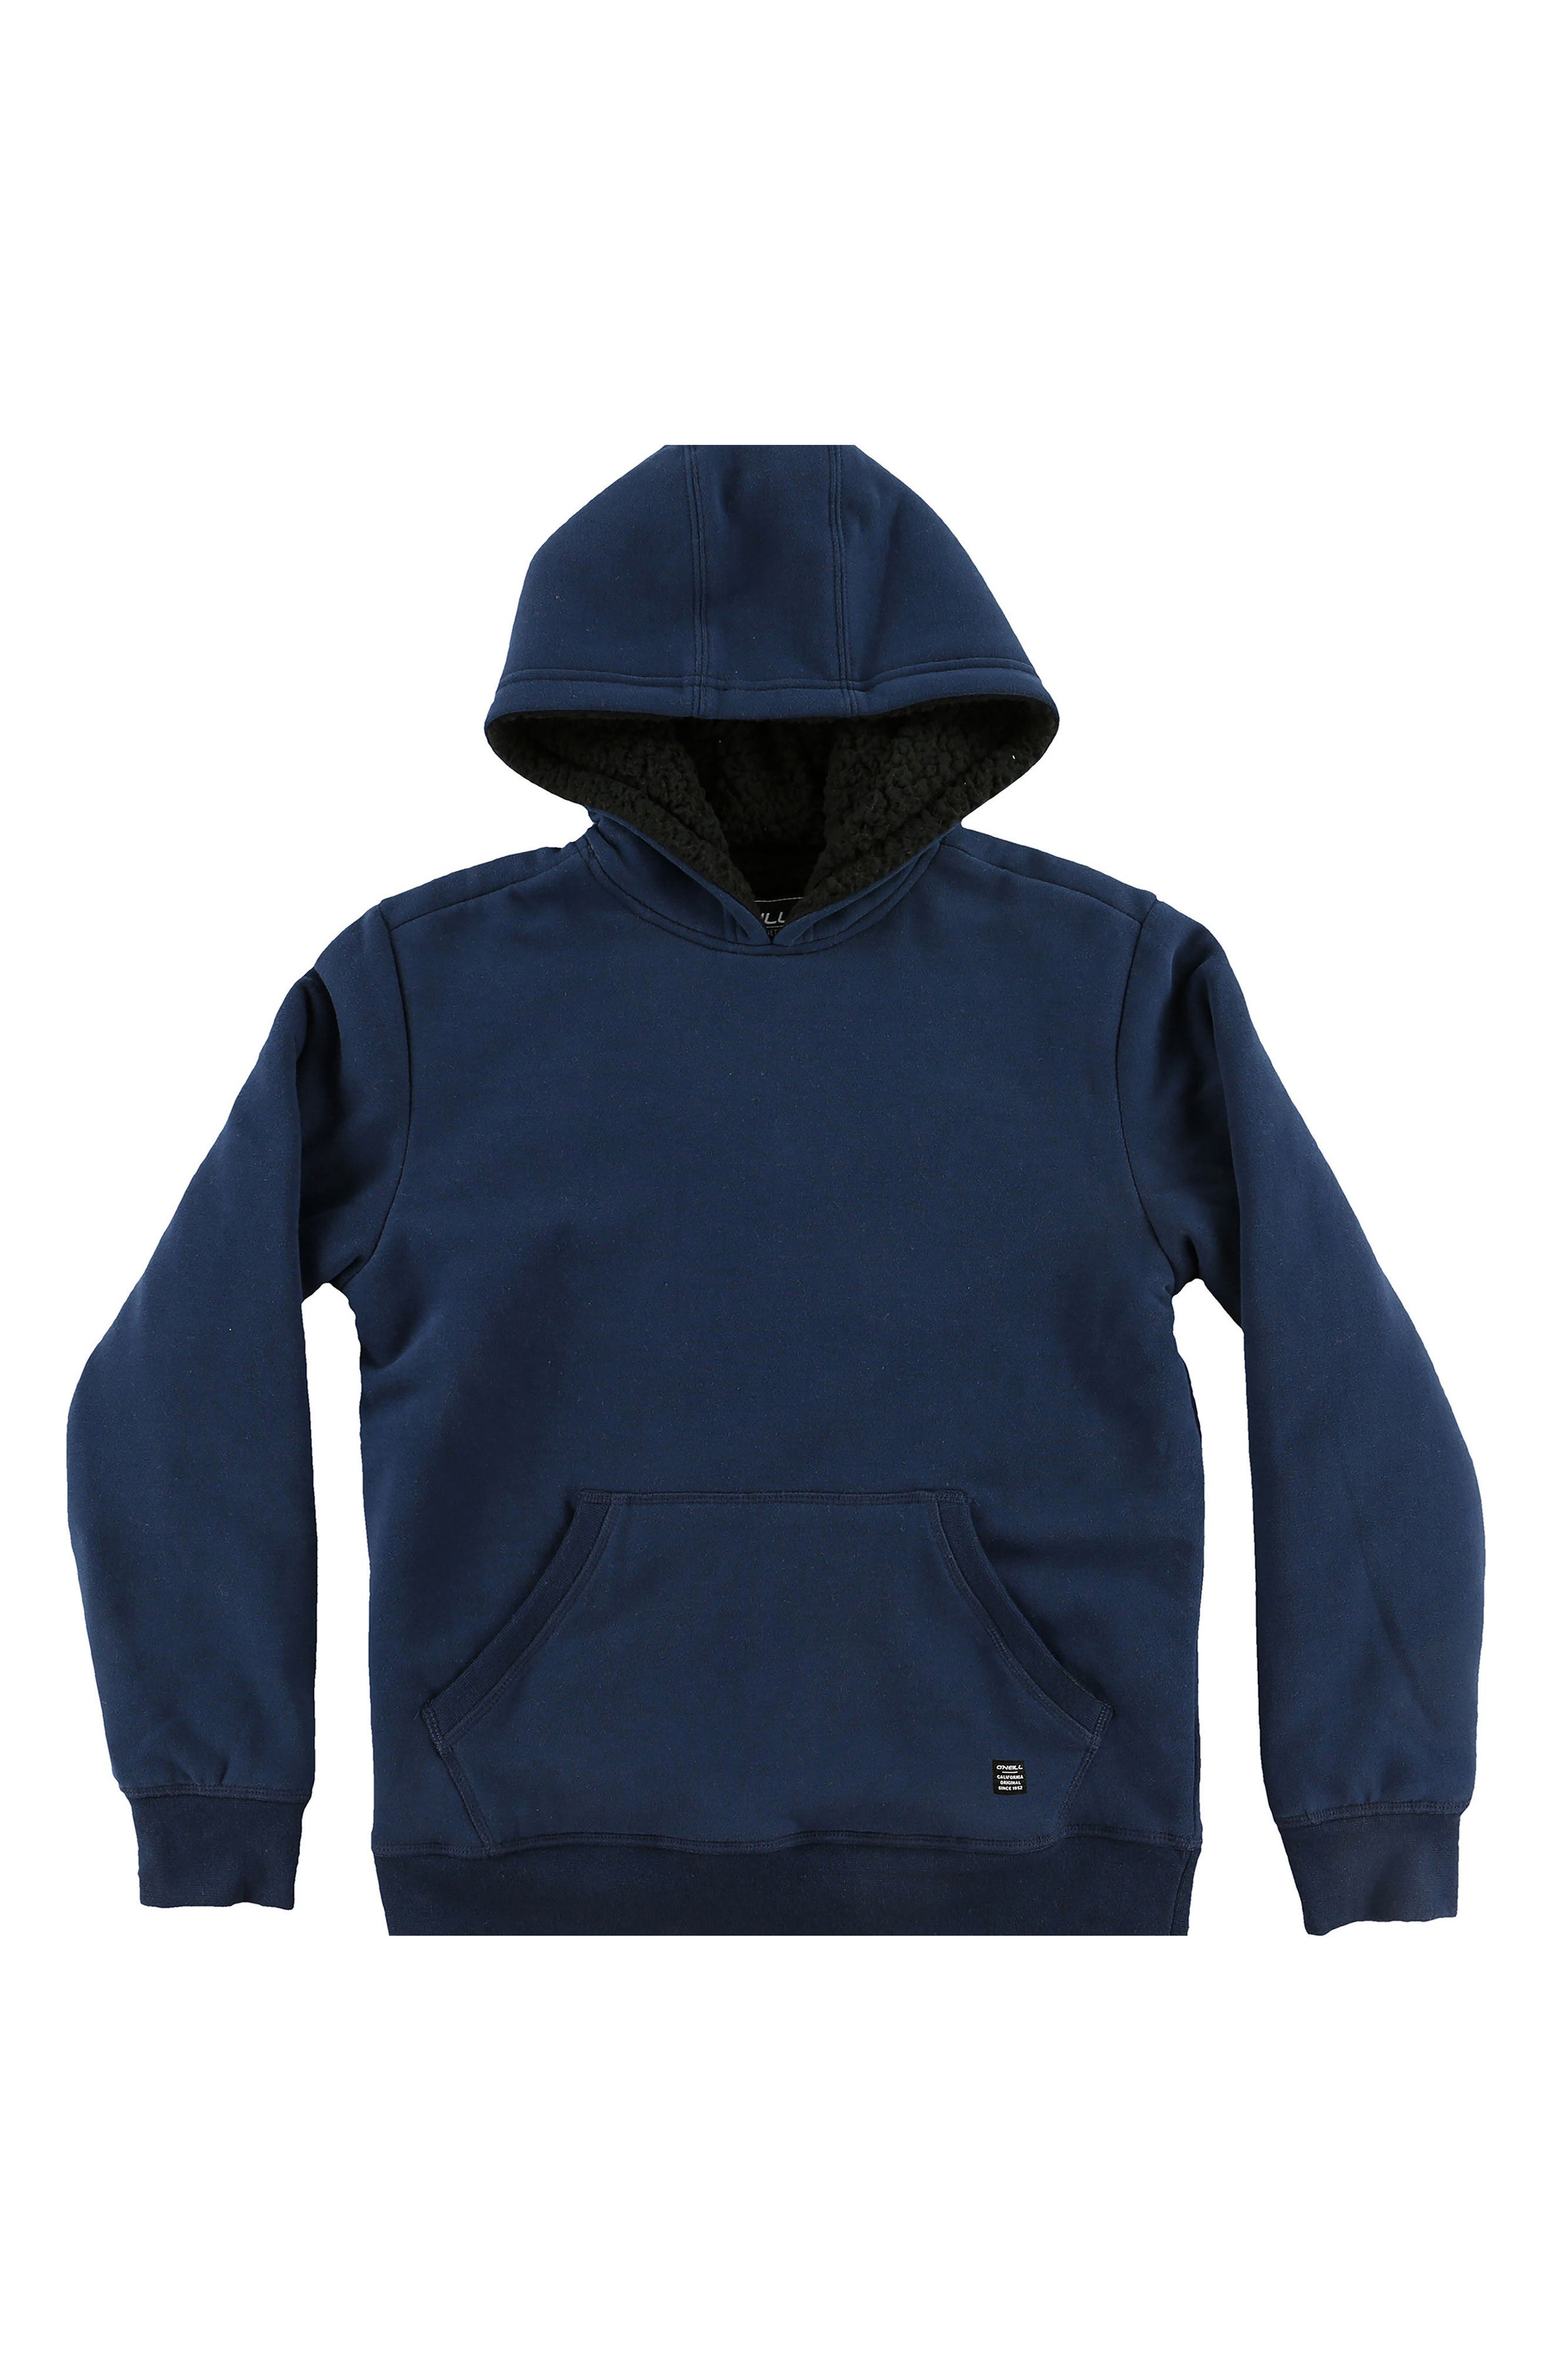 Staple Plush Lined Pullover Hoodie,                         Main,                         color, Navy